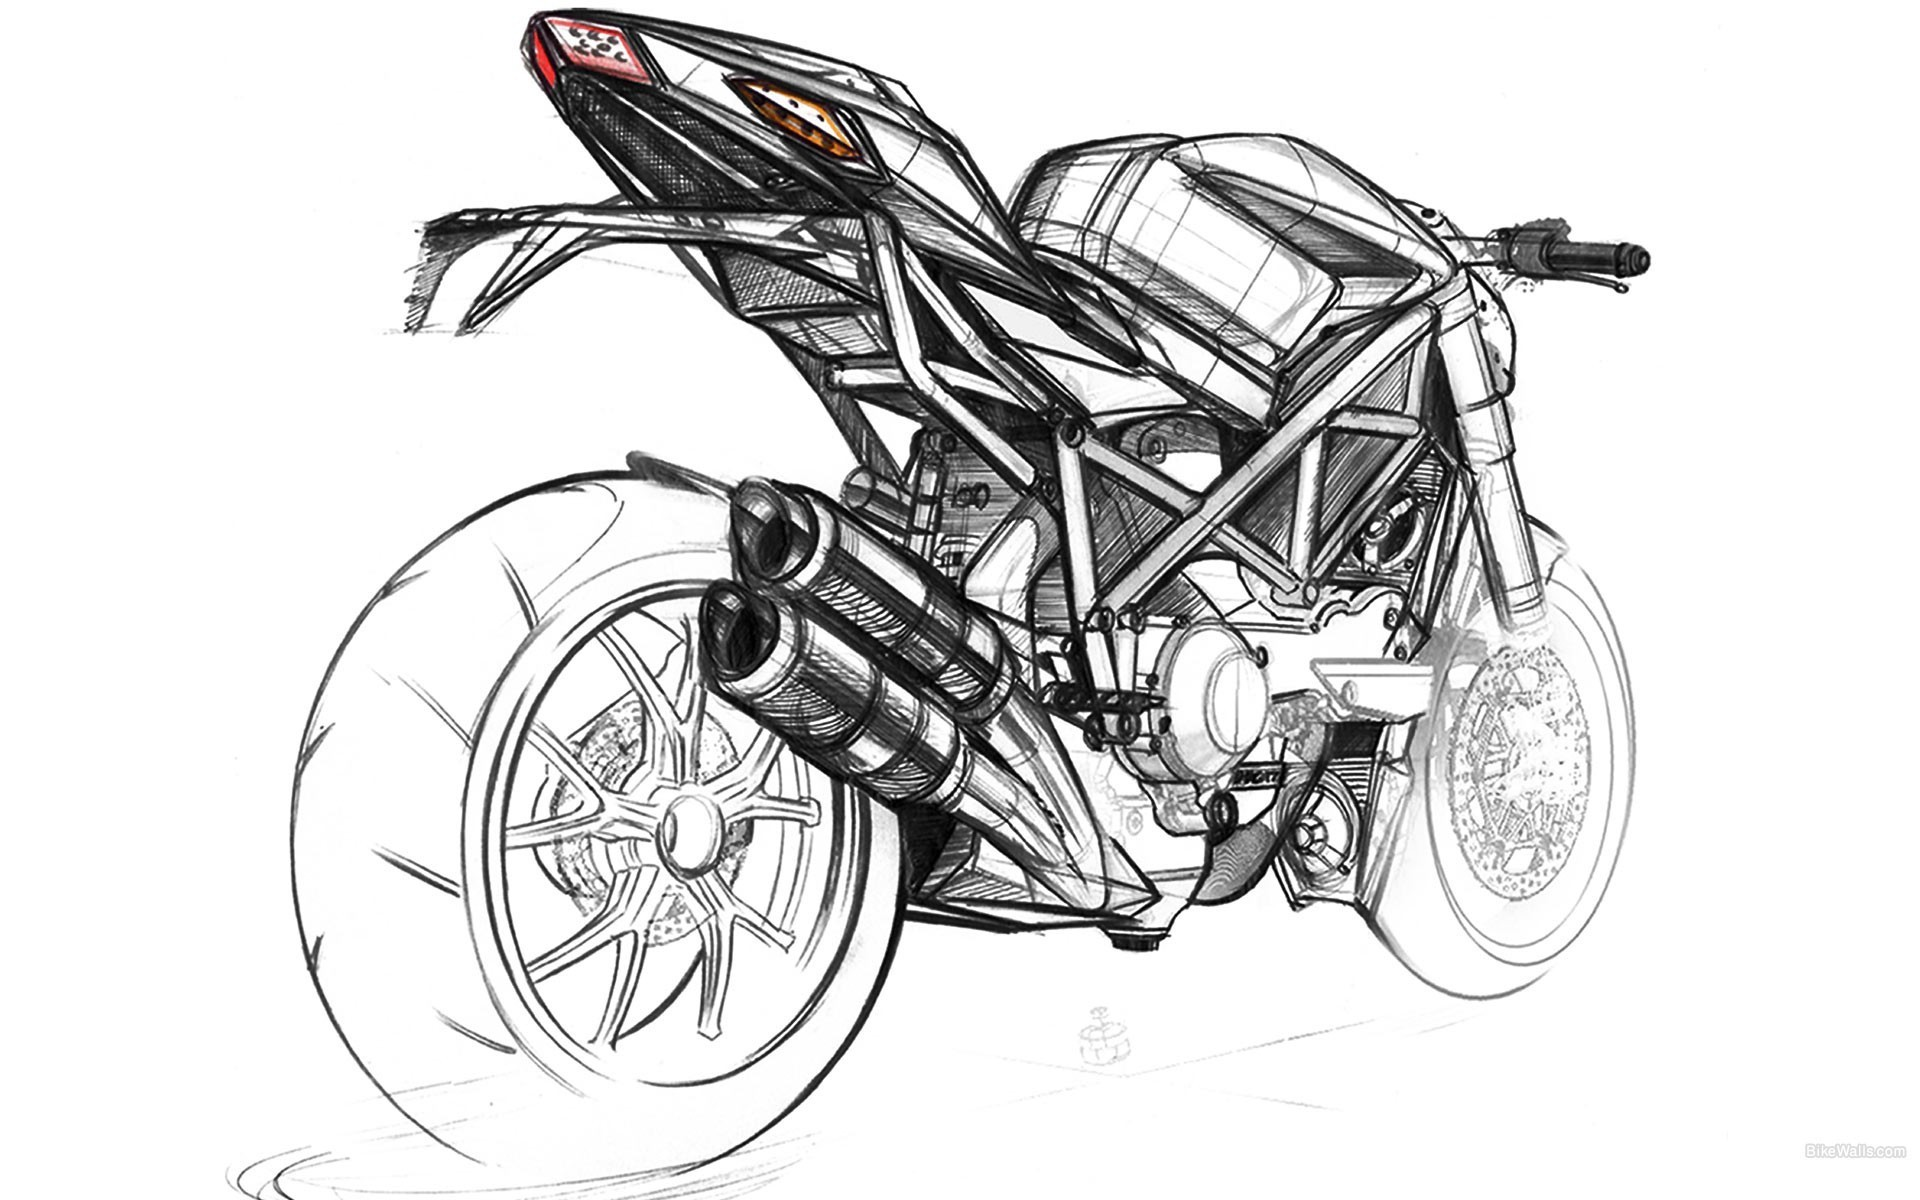 Ducati-artwork-motorbikes-sketches-vehicles-1920x1200-wallpaper